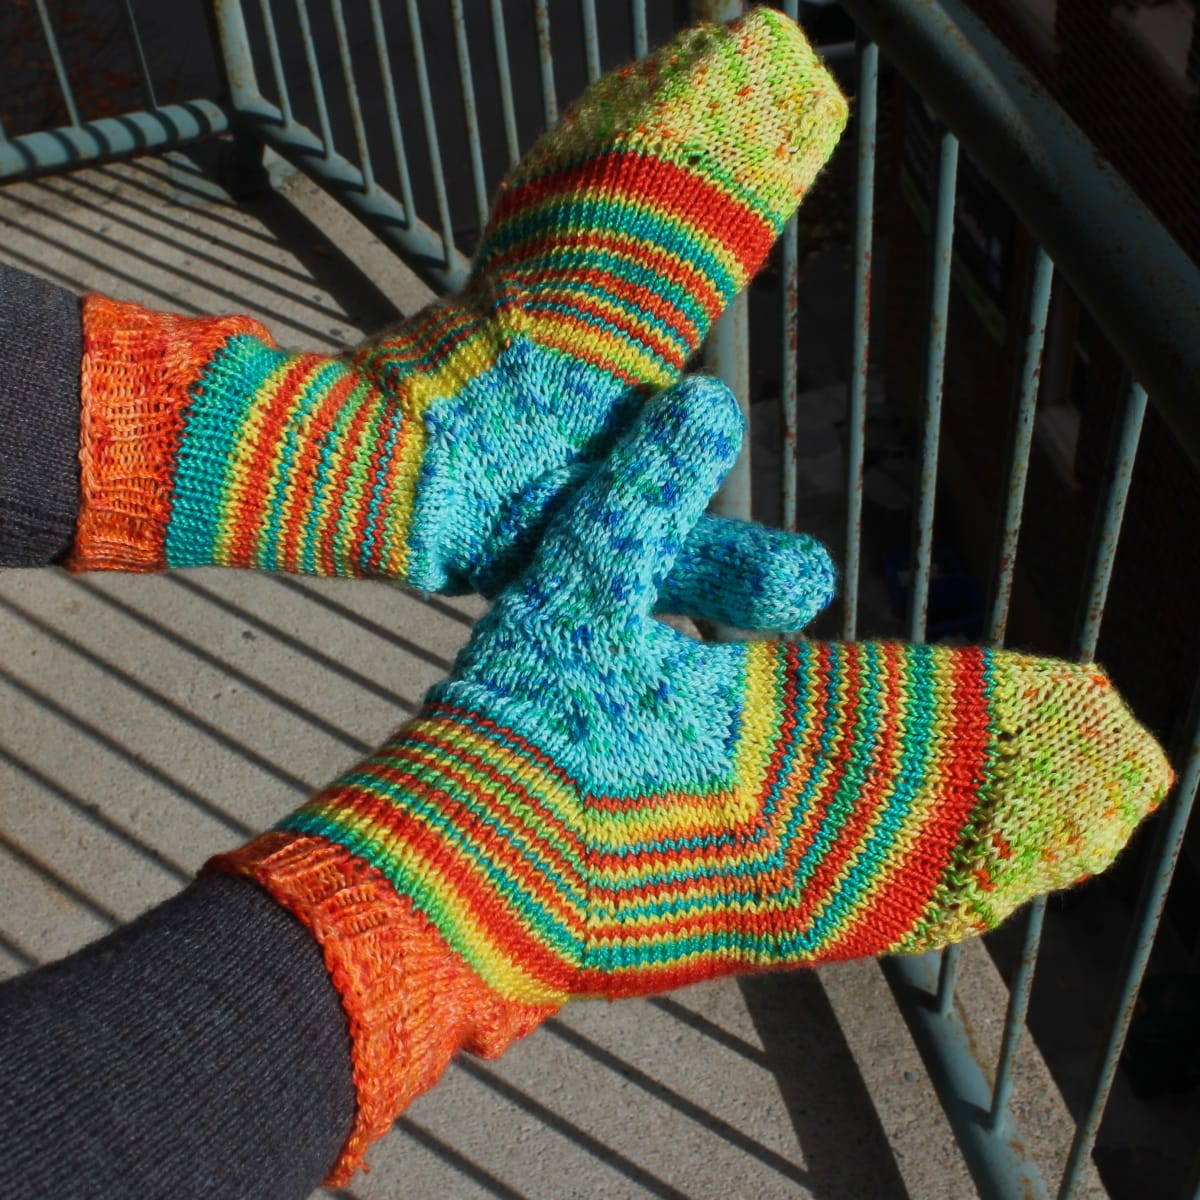 Top-down view of backs of hands wearing bright yellow, blue, and orange mittens with a multicoloured stripe across the palm between the colours.